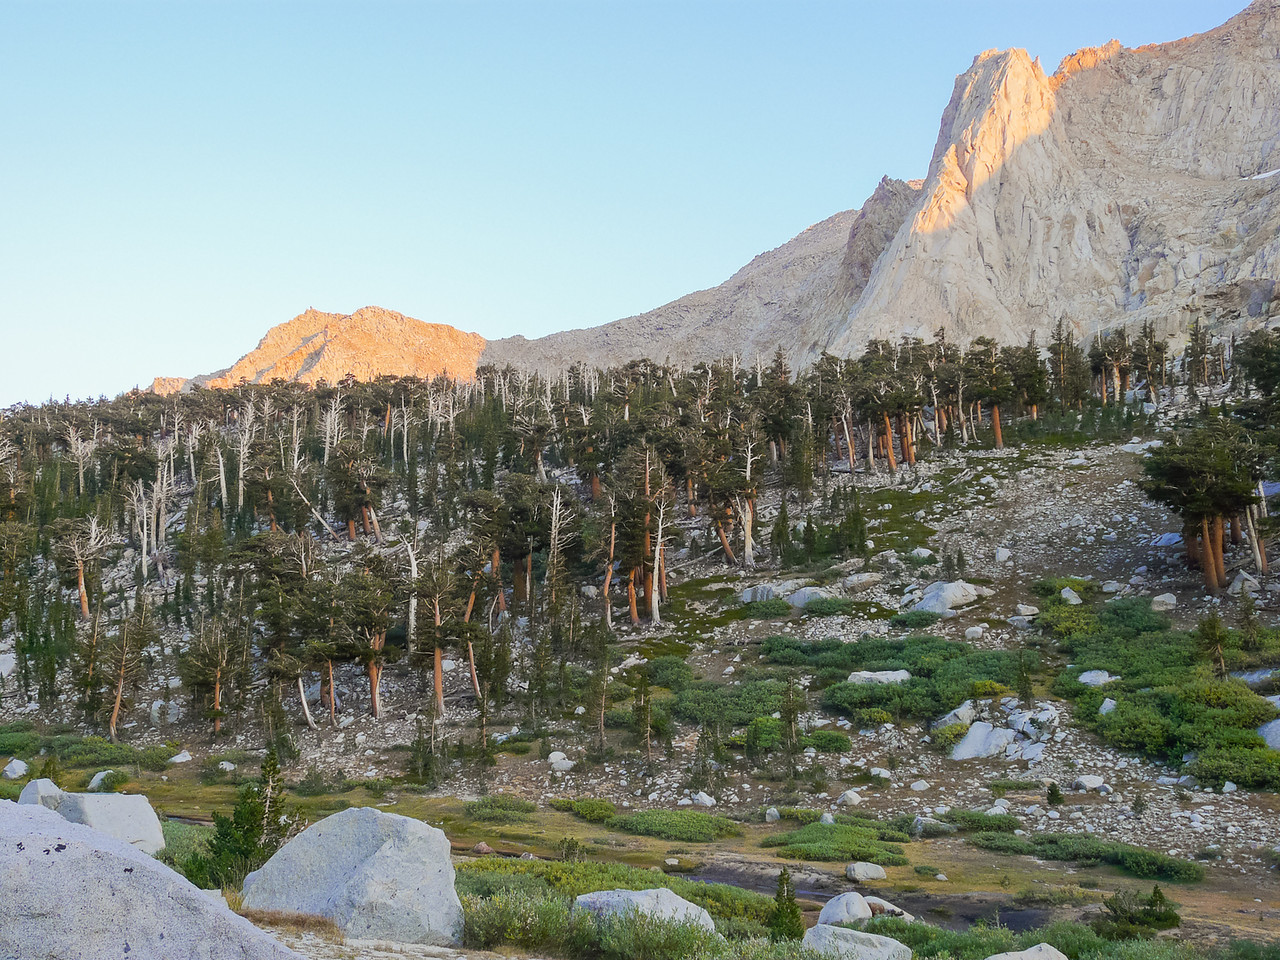 Foxtail pines -- live and dead -- on the sides of this meadowed canyon.  Dead foxtails can stand for centuries.